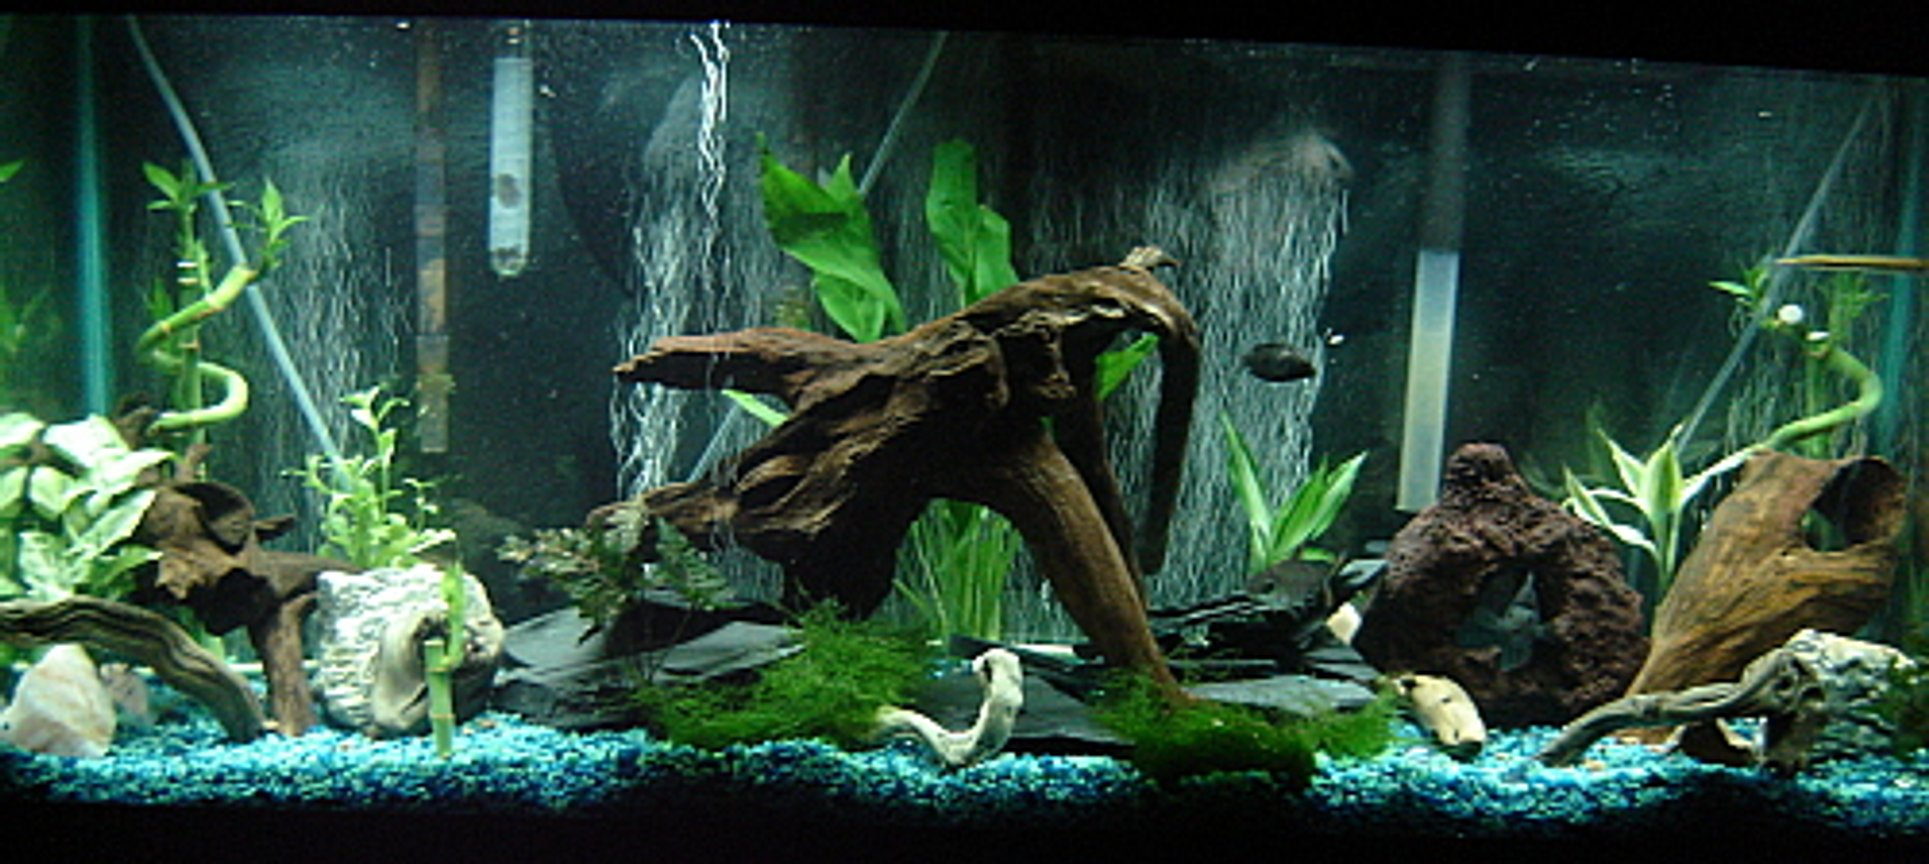 55 gallons freshwater fish tank (mostly fish and non-living decorations) - South American Cichlid Tank. Natural driftwood, slate, lava rock, live plants.